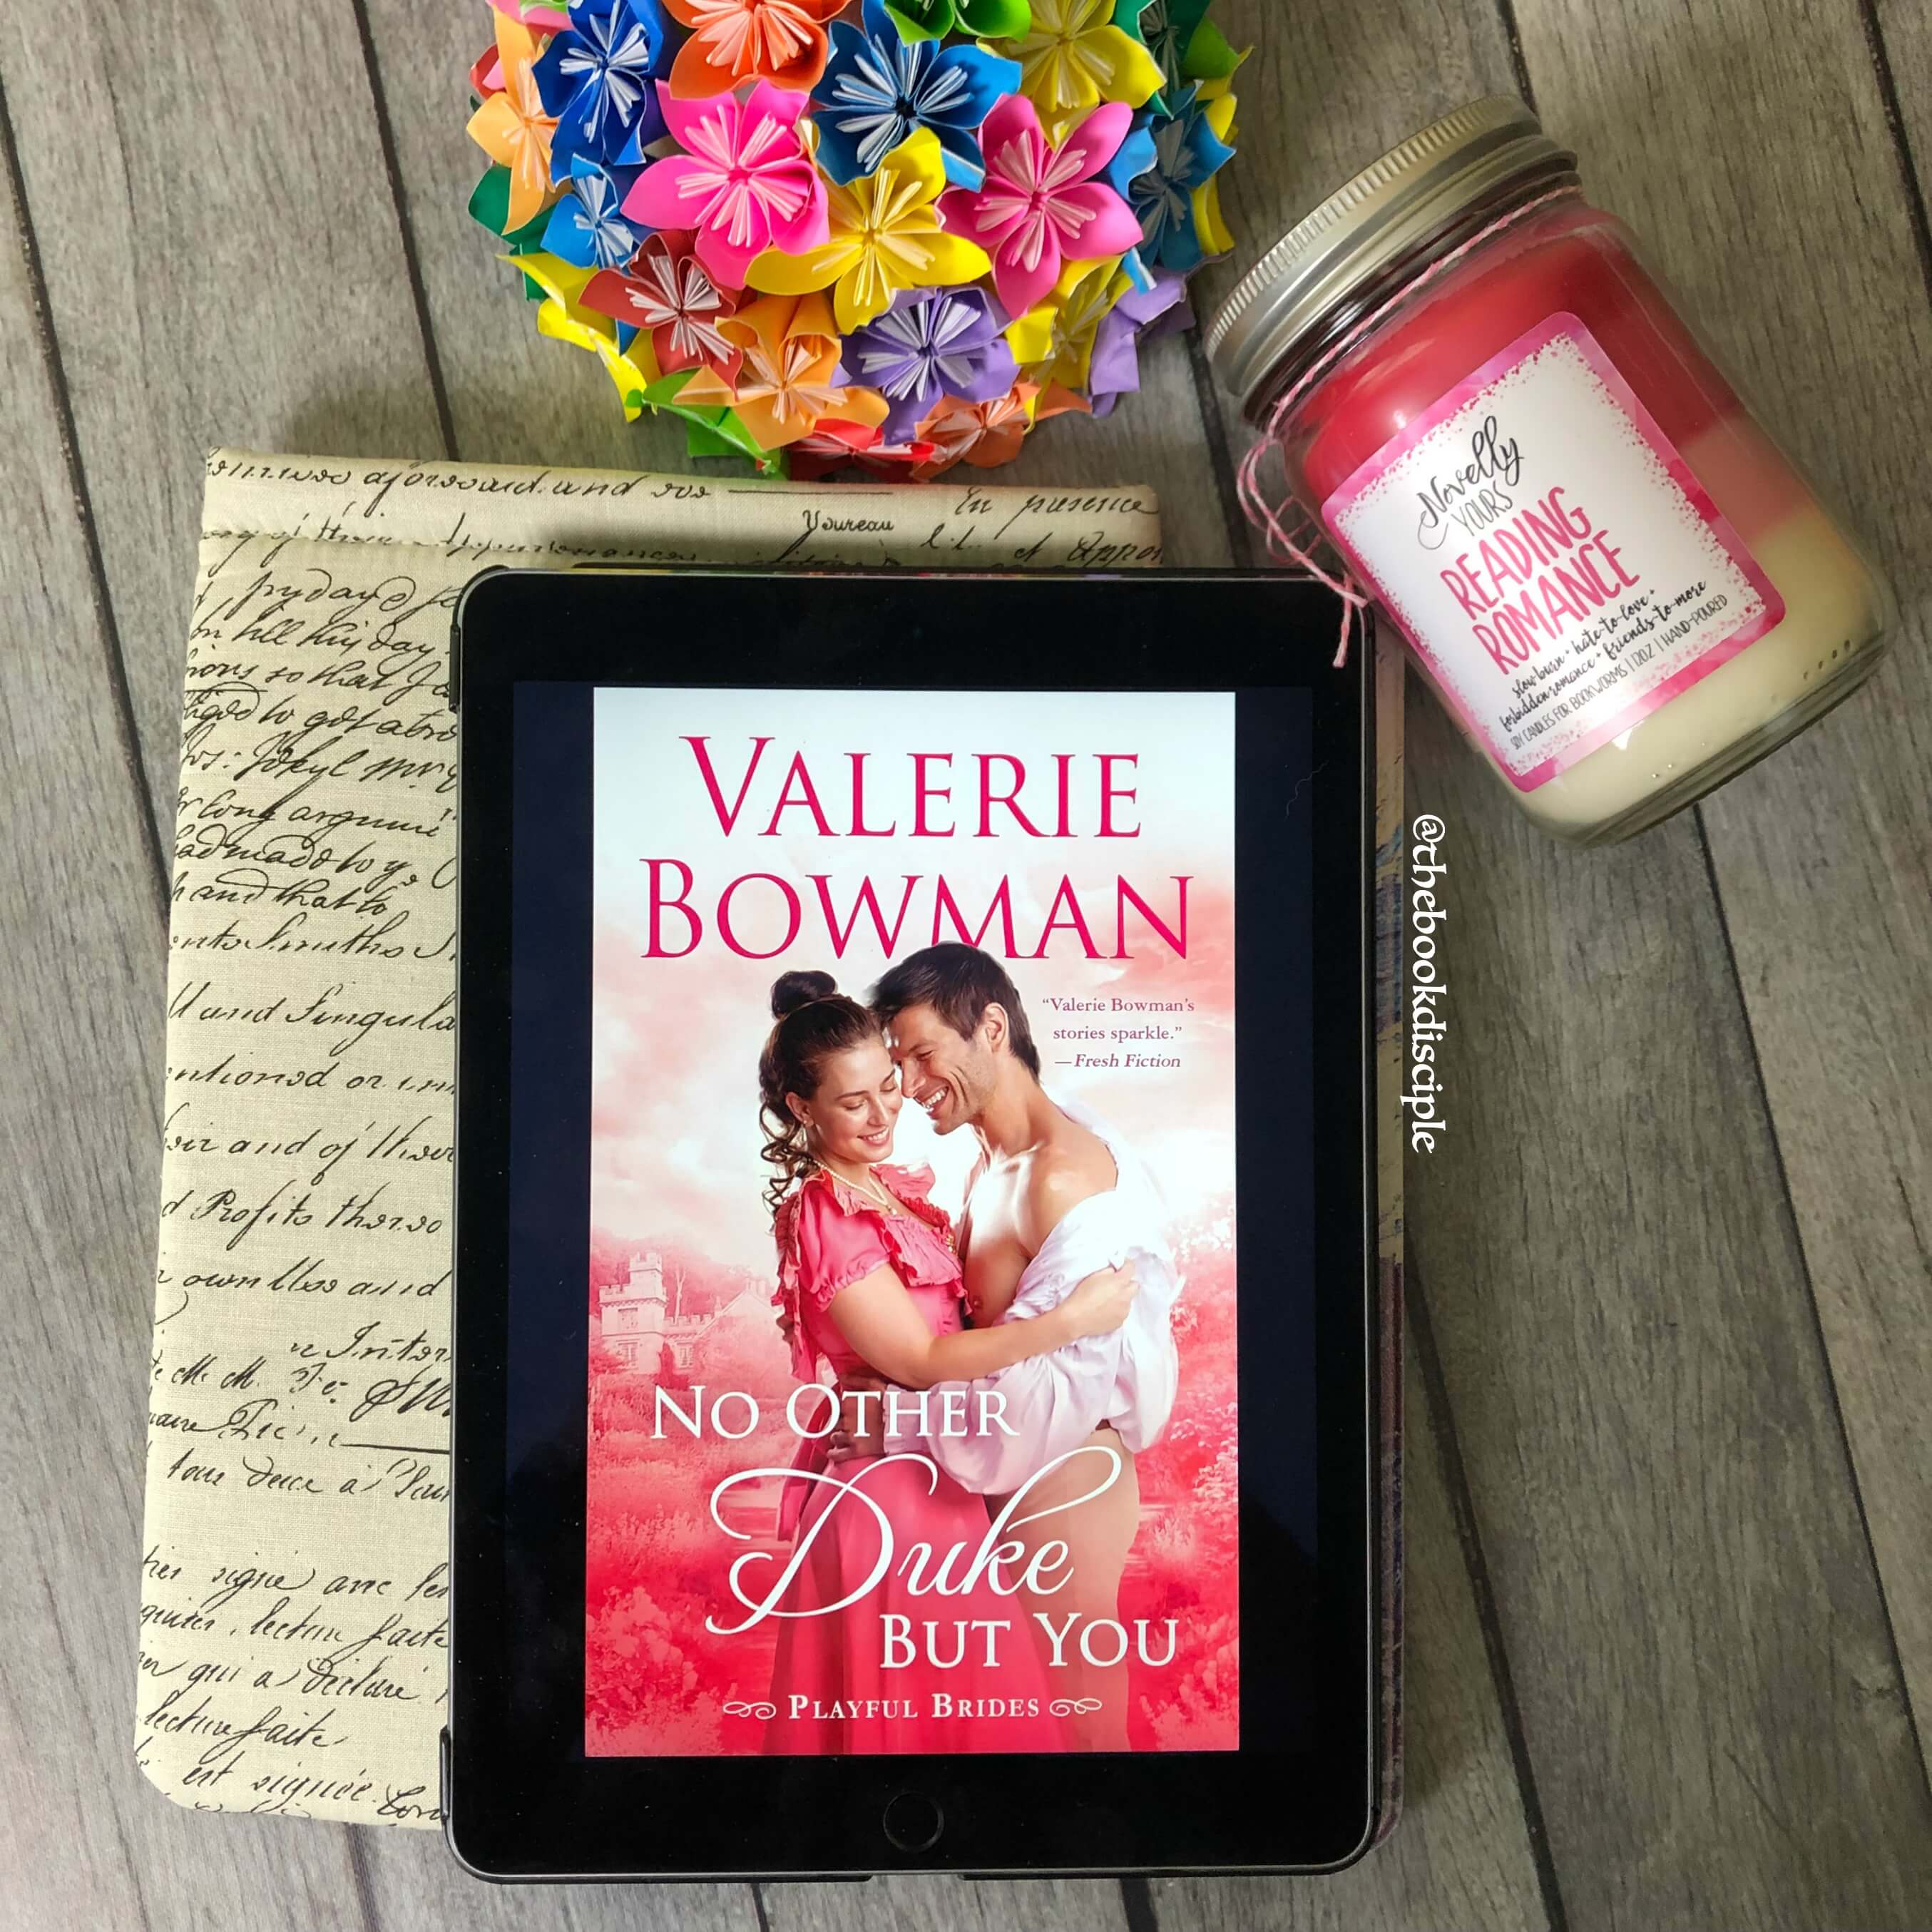 No Other Duke but You by Valerie Bowman